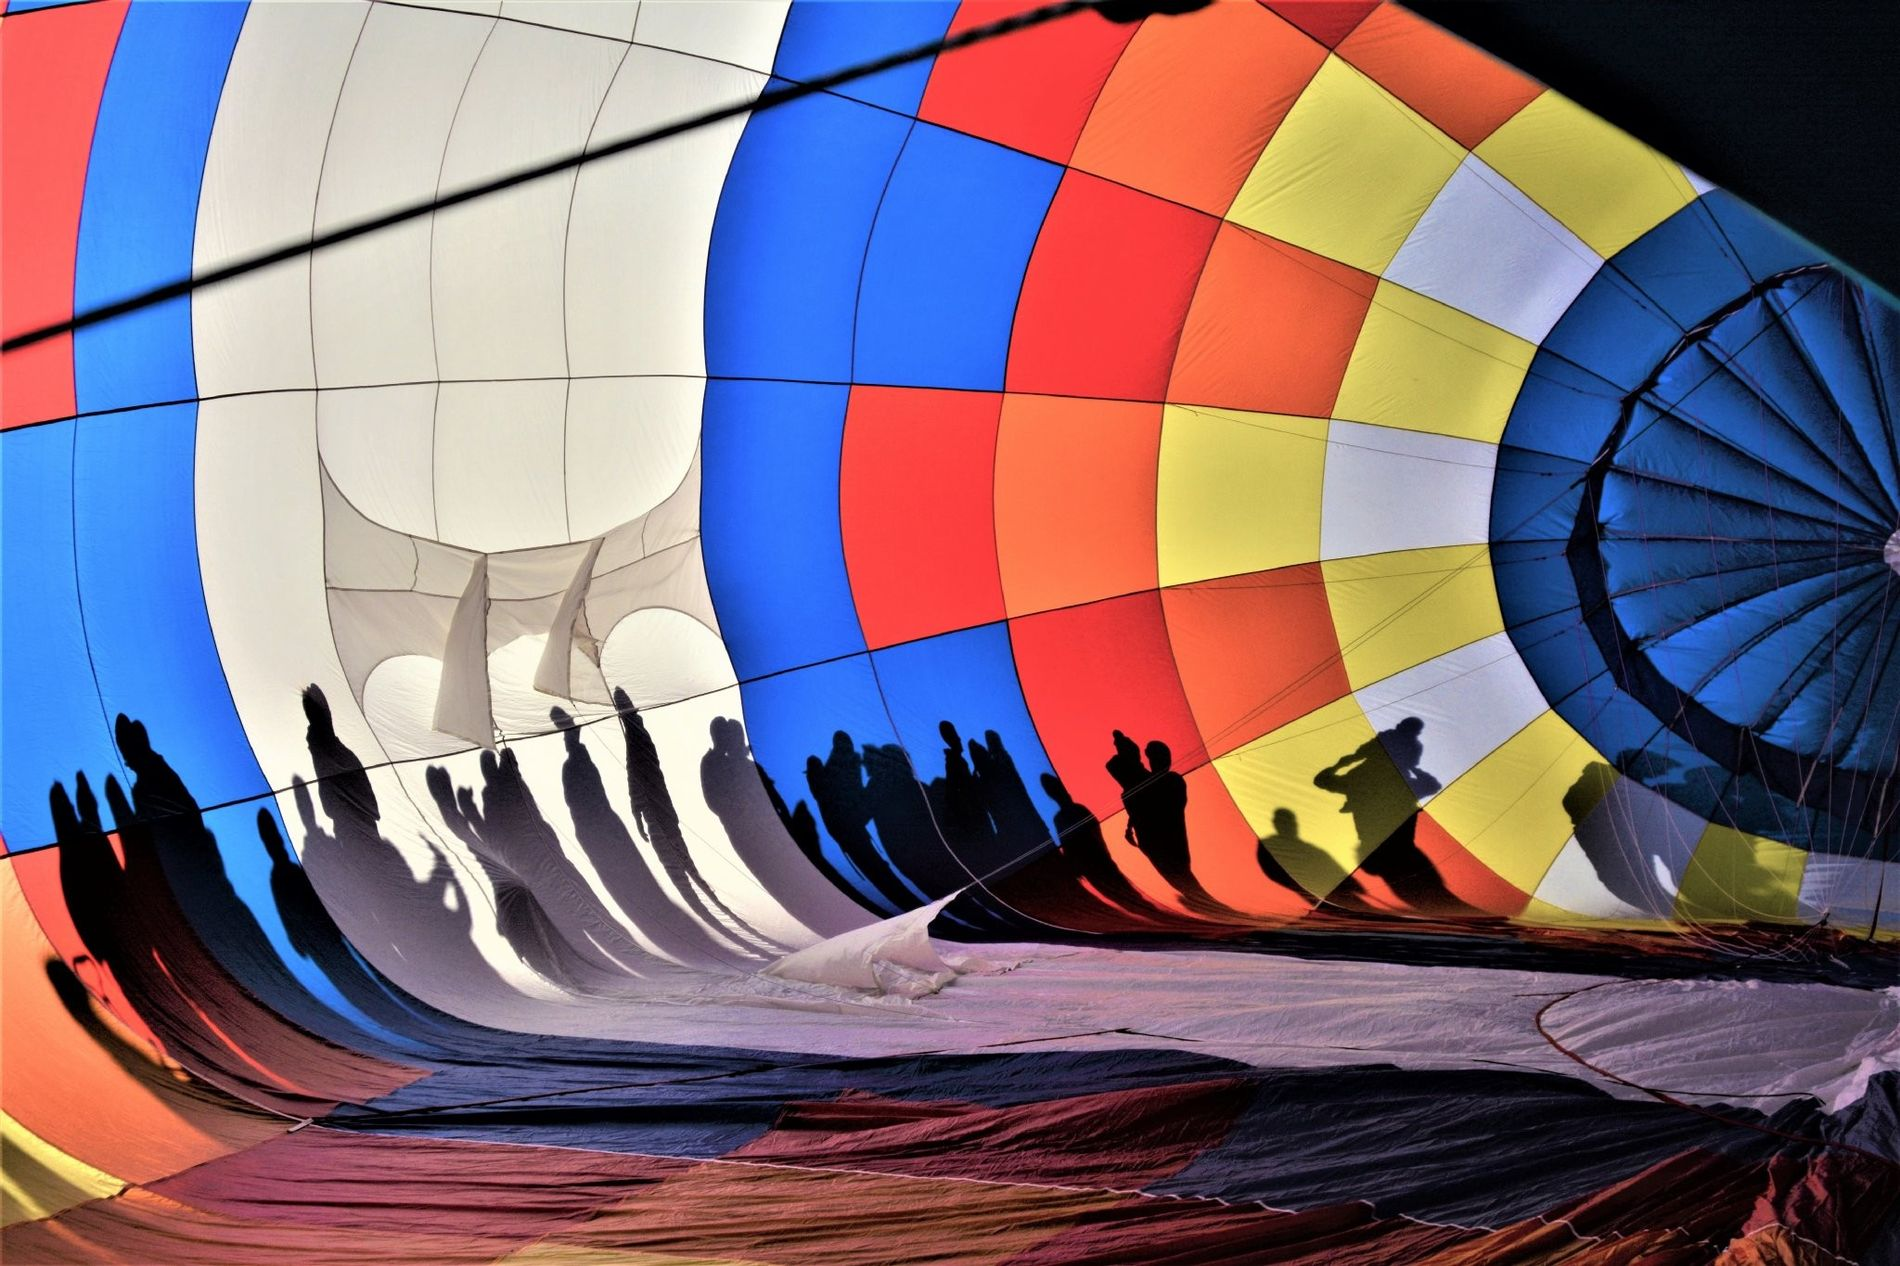 """For the first time I had the opportunity to go to Albuquerque and to enjoy this fascinating festival,"" writes Your Shot photographer Marise Zimmermann about her first visit to the Albuquerque International Balloon Fiesta in New Mexico. ""I became very curious in exploring and in photographing the balloons from the inside space; the various colours and the shadows created by the sun."""